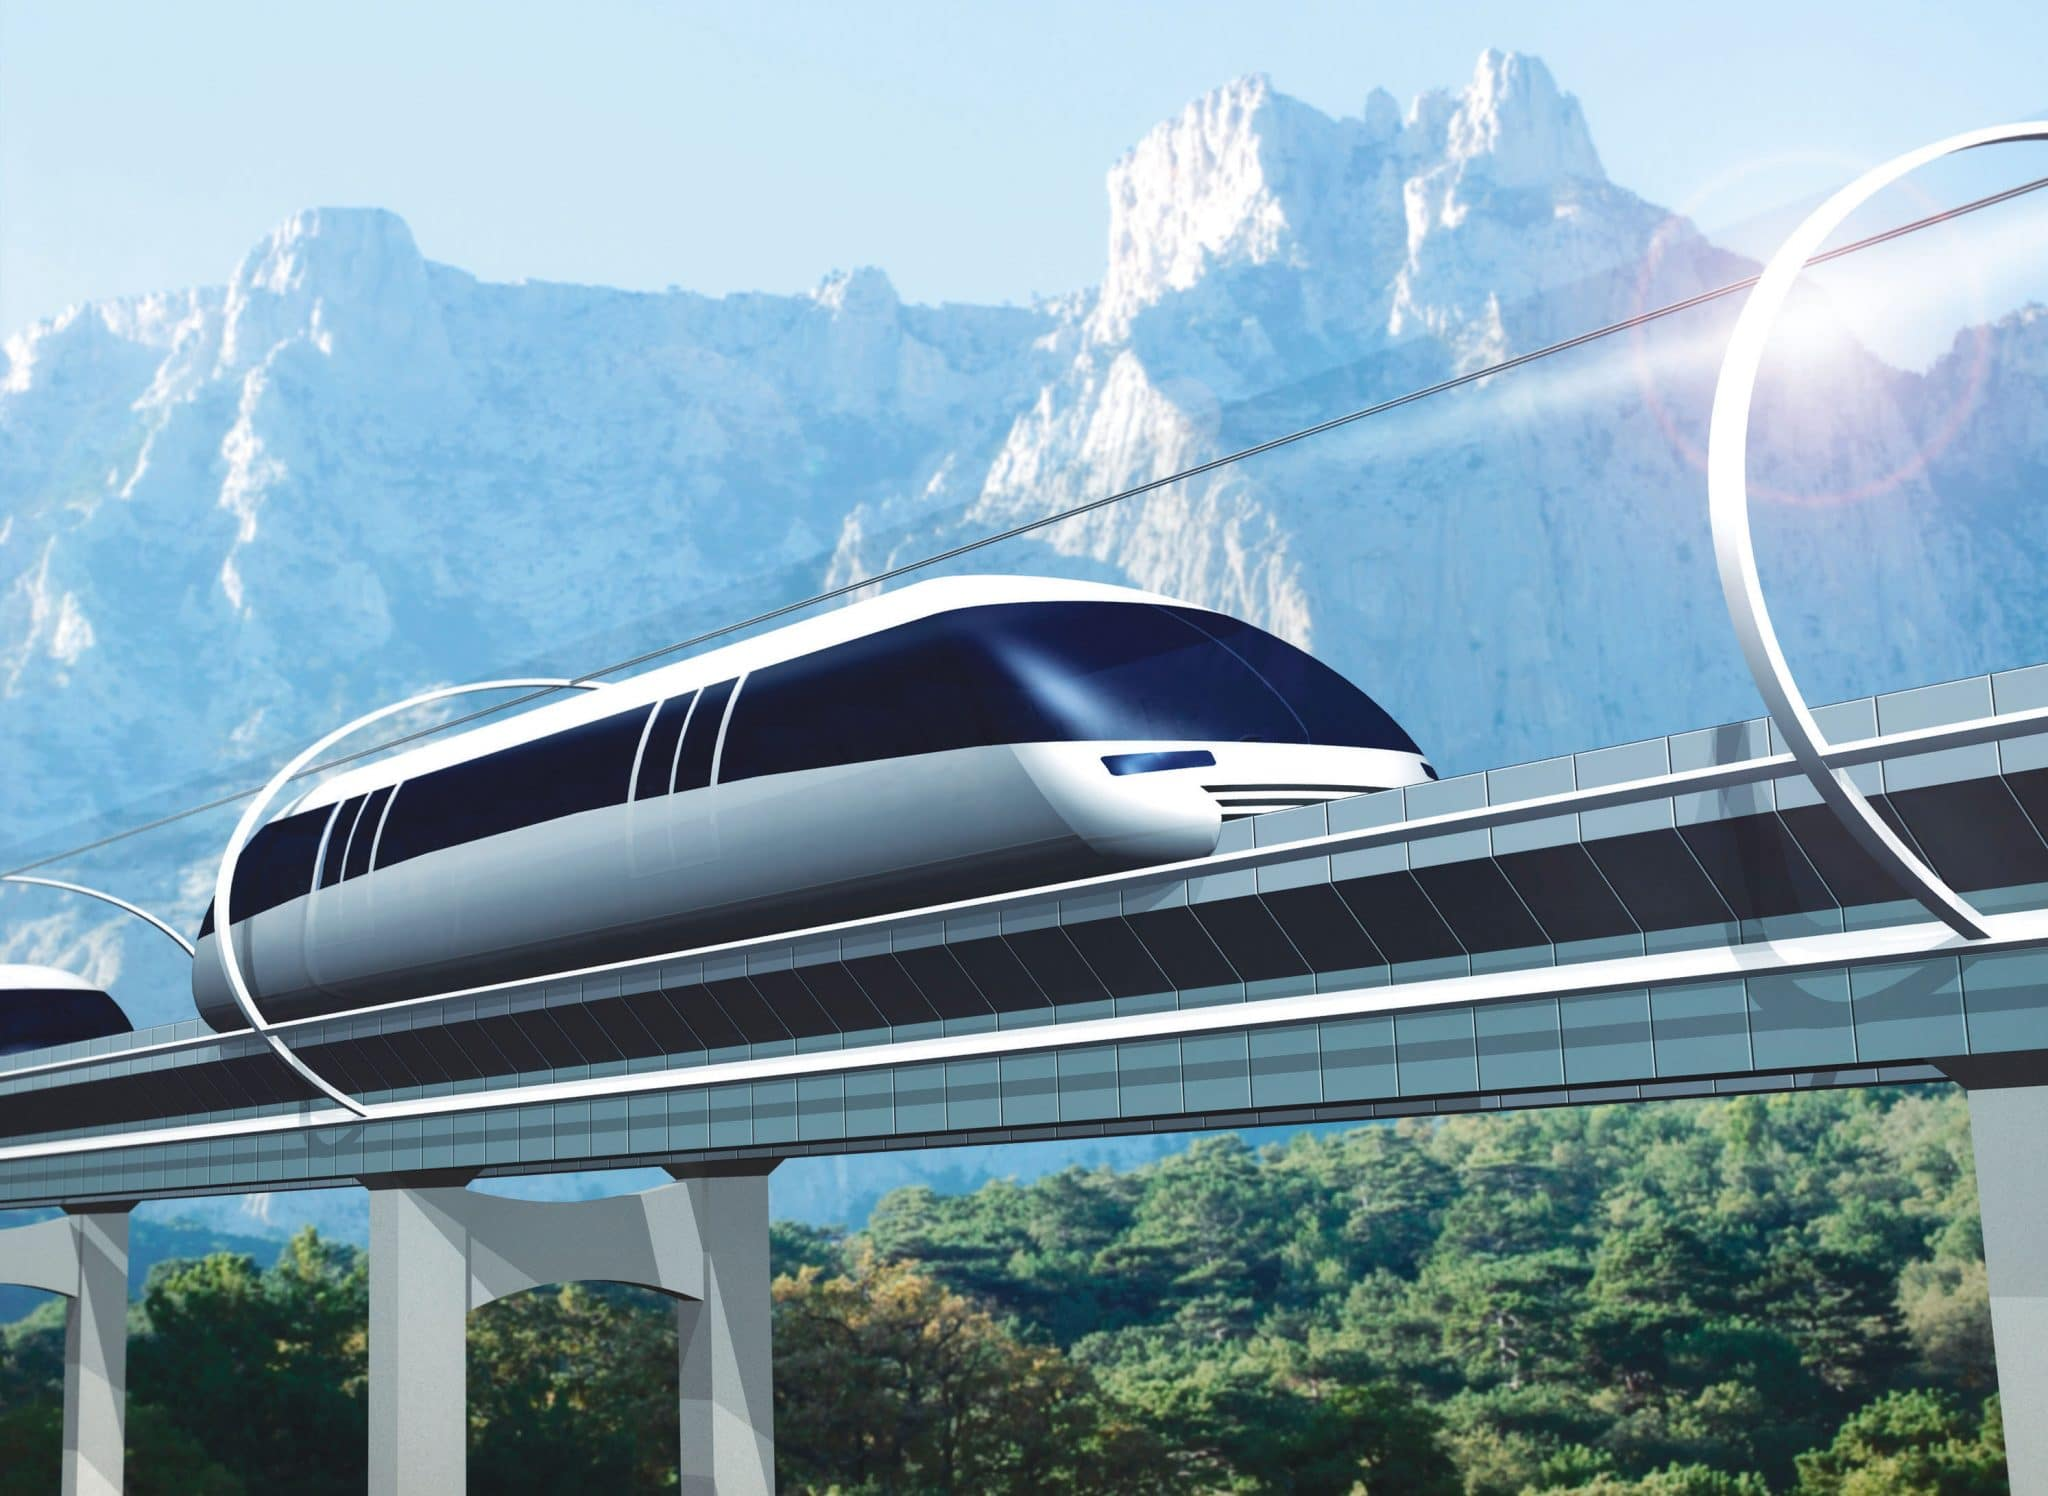 Les promesses de l'Hyperloop | Innovation24.news